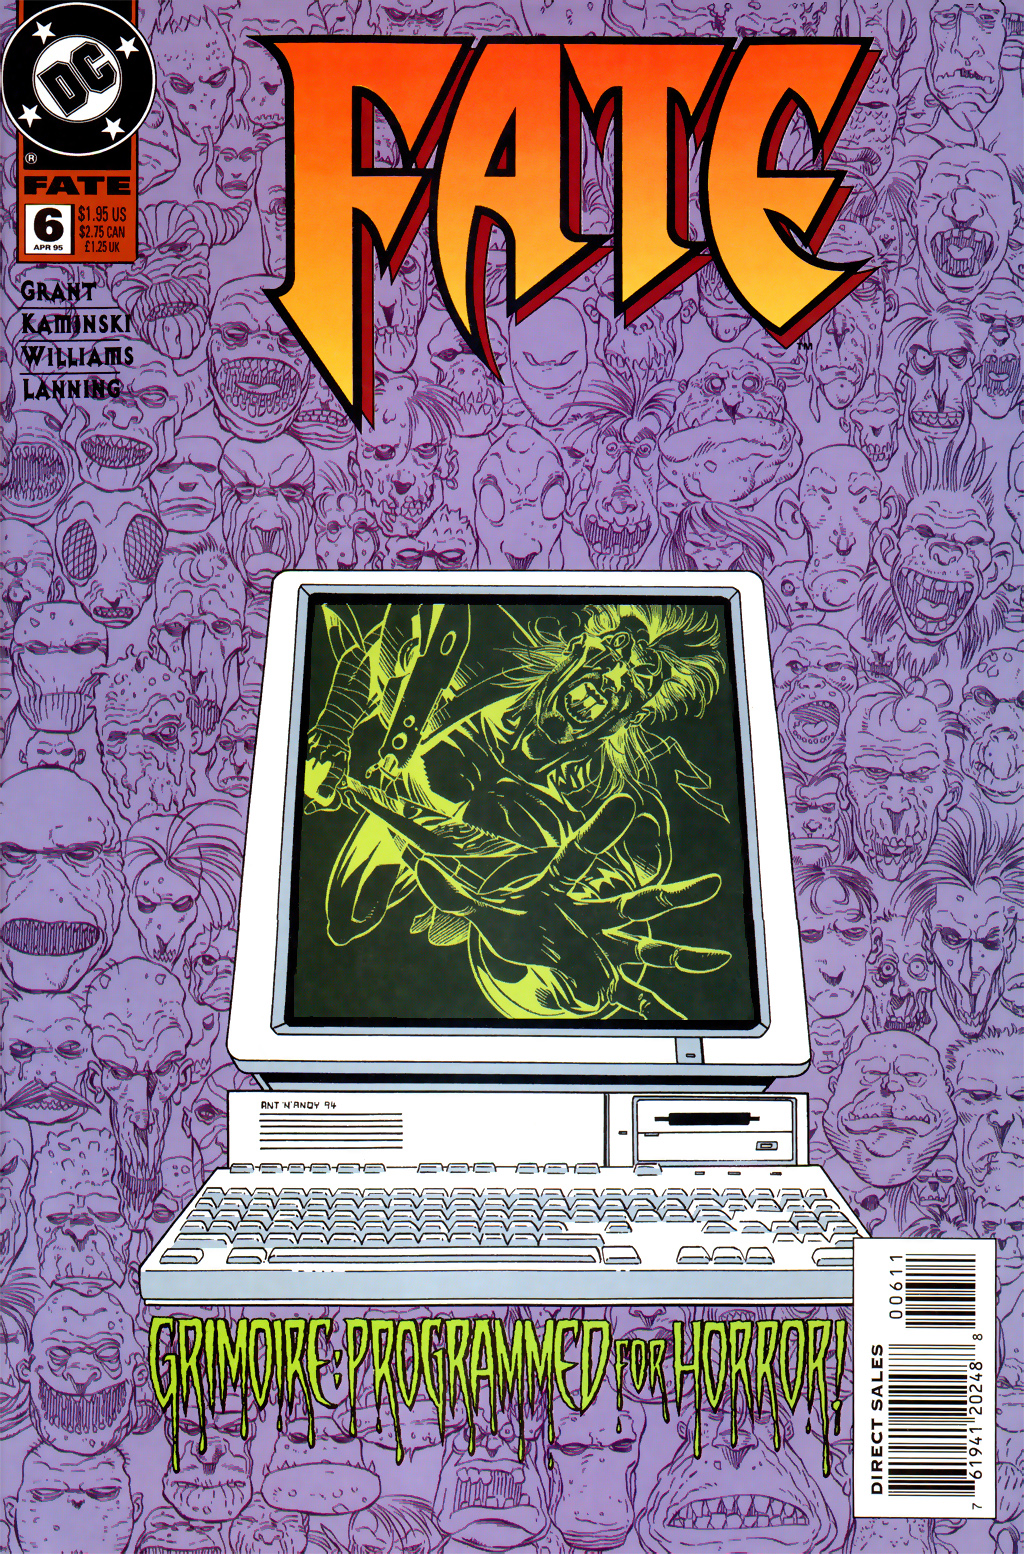 Read online Fate comic -  Issue #6 - 1